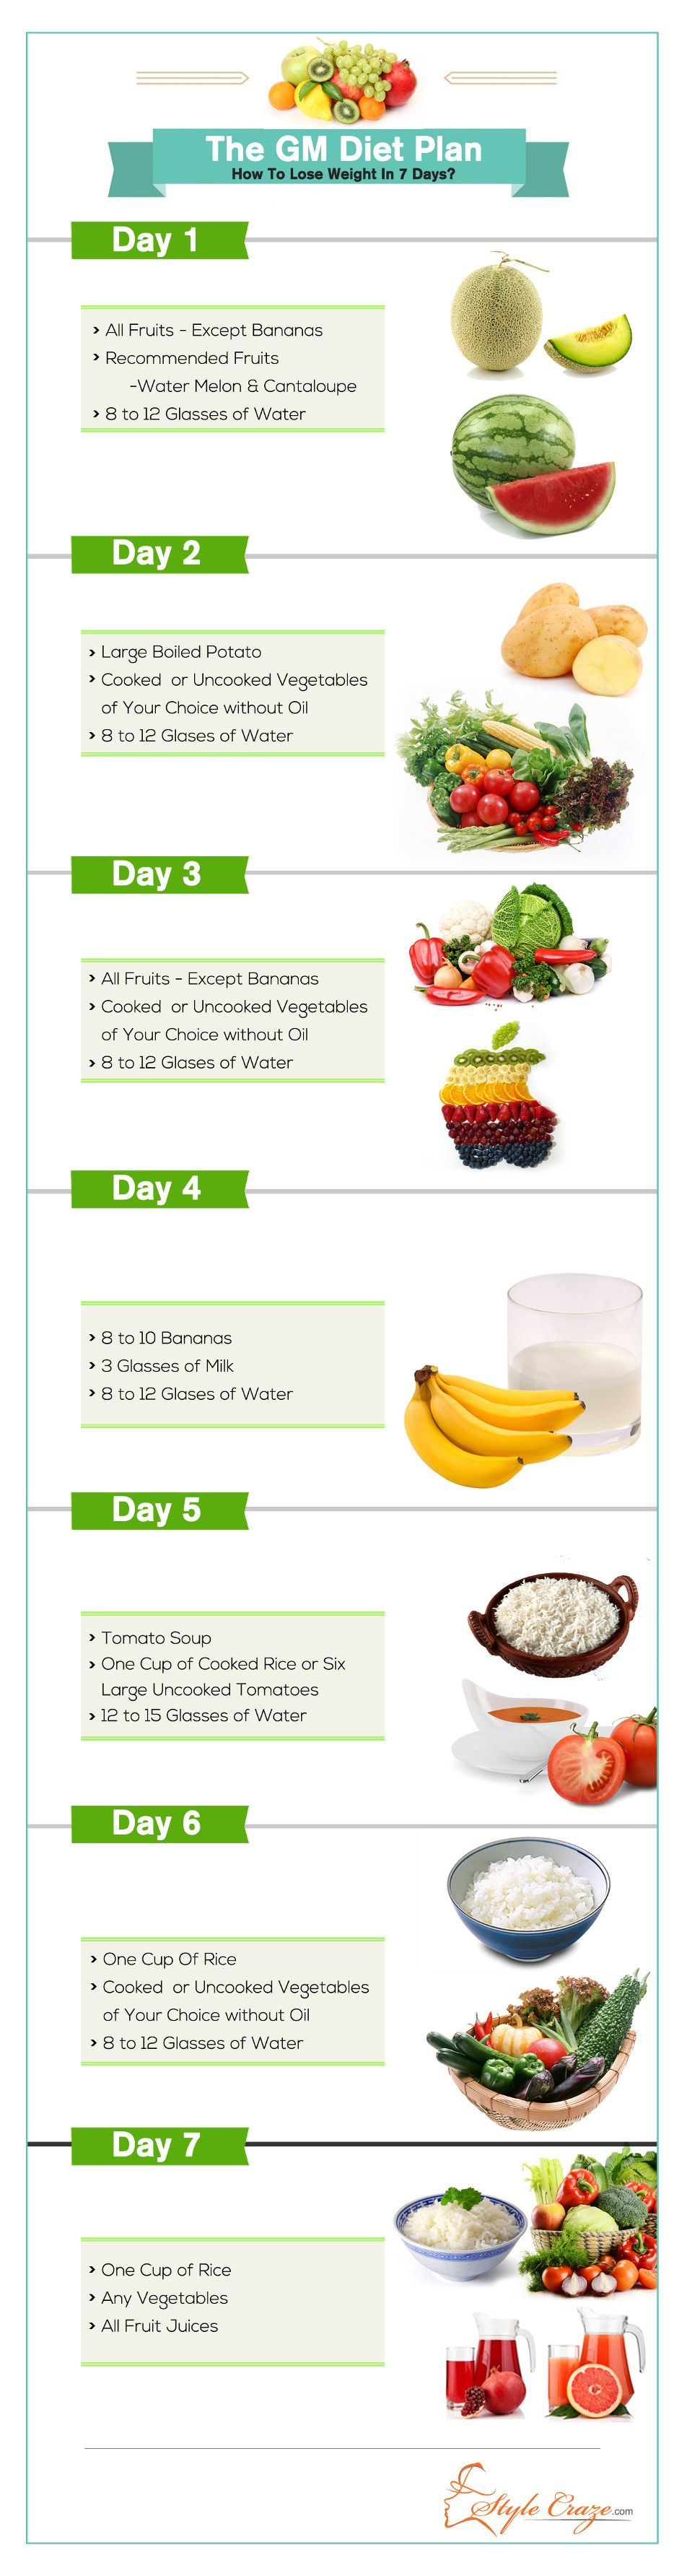 the gm diet plan how to lose weight in just 7 days gm